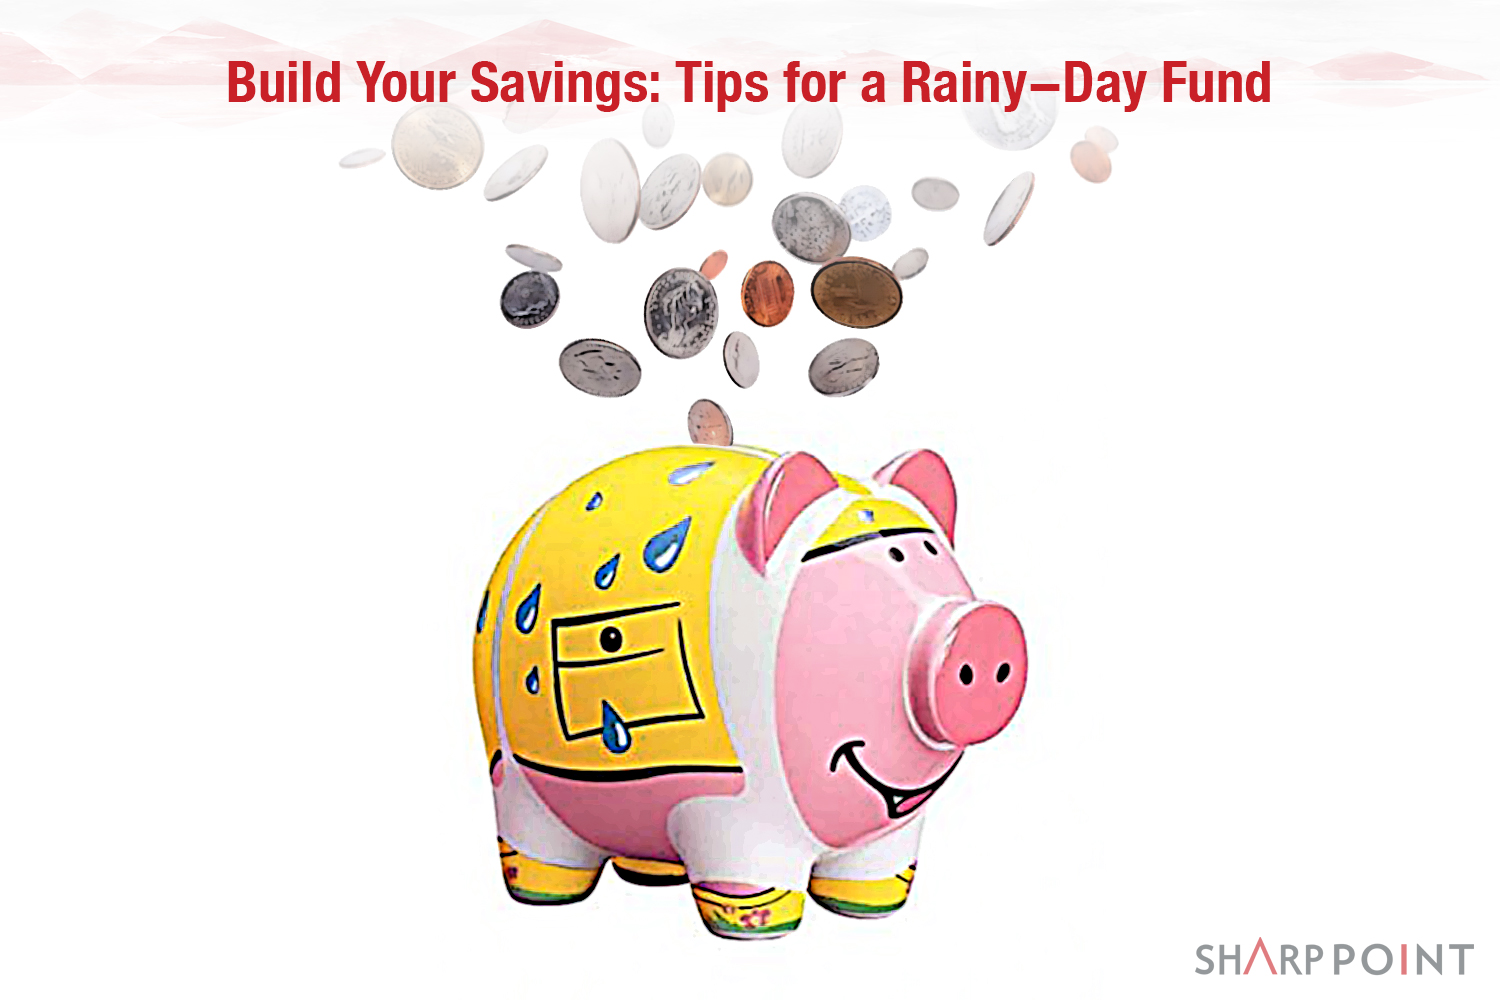 Sharppoint-Build-Your-Savings-Rainy-Day.jpg